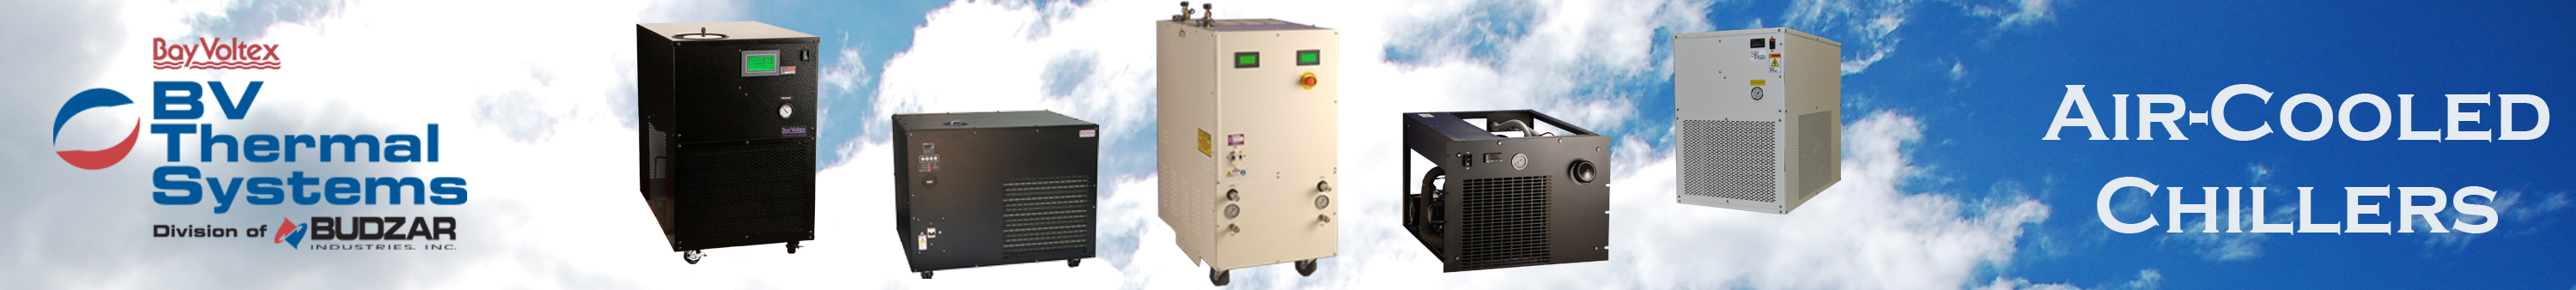 air-cooled-chillers-header